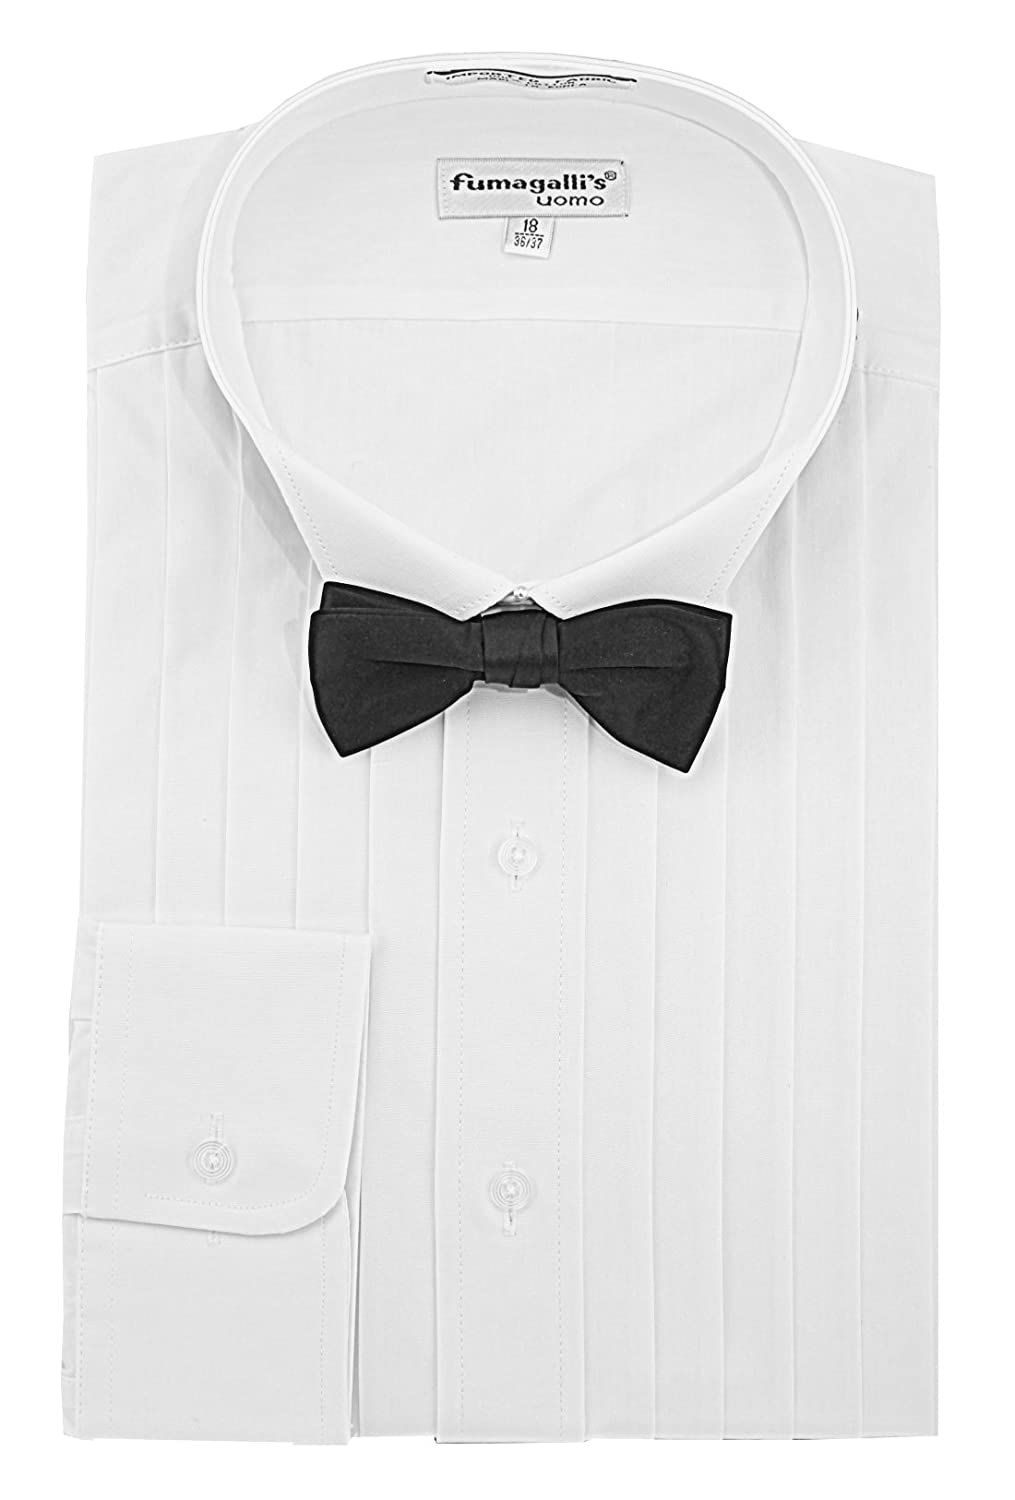 Neil Allyn 100% Cotton, Wing Collar, Tuxedo Shirt (Big & Tall) with Bow-Tie BT980B